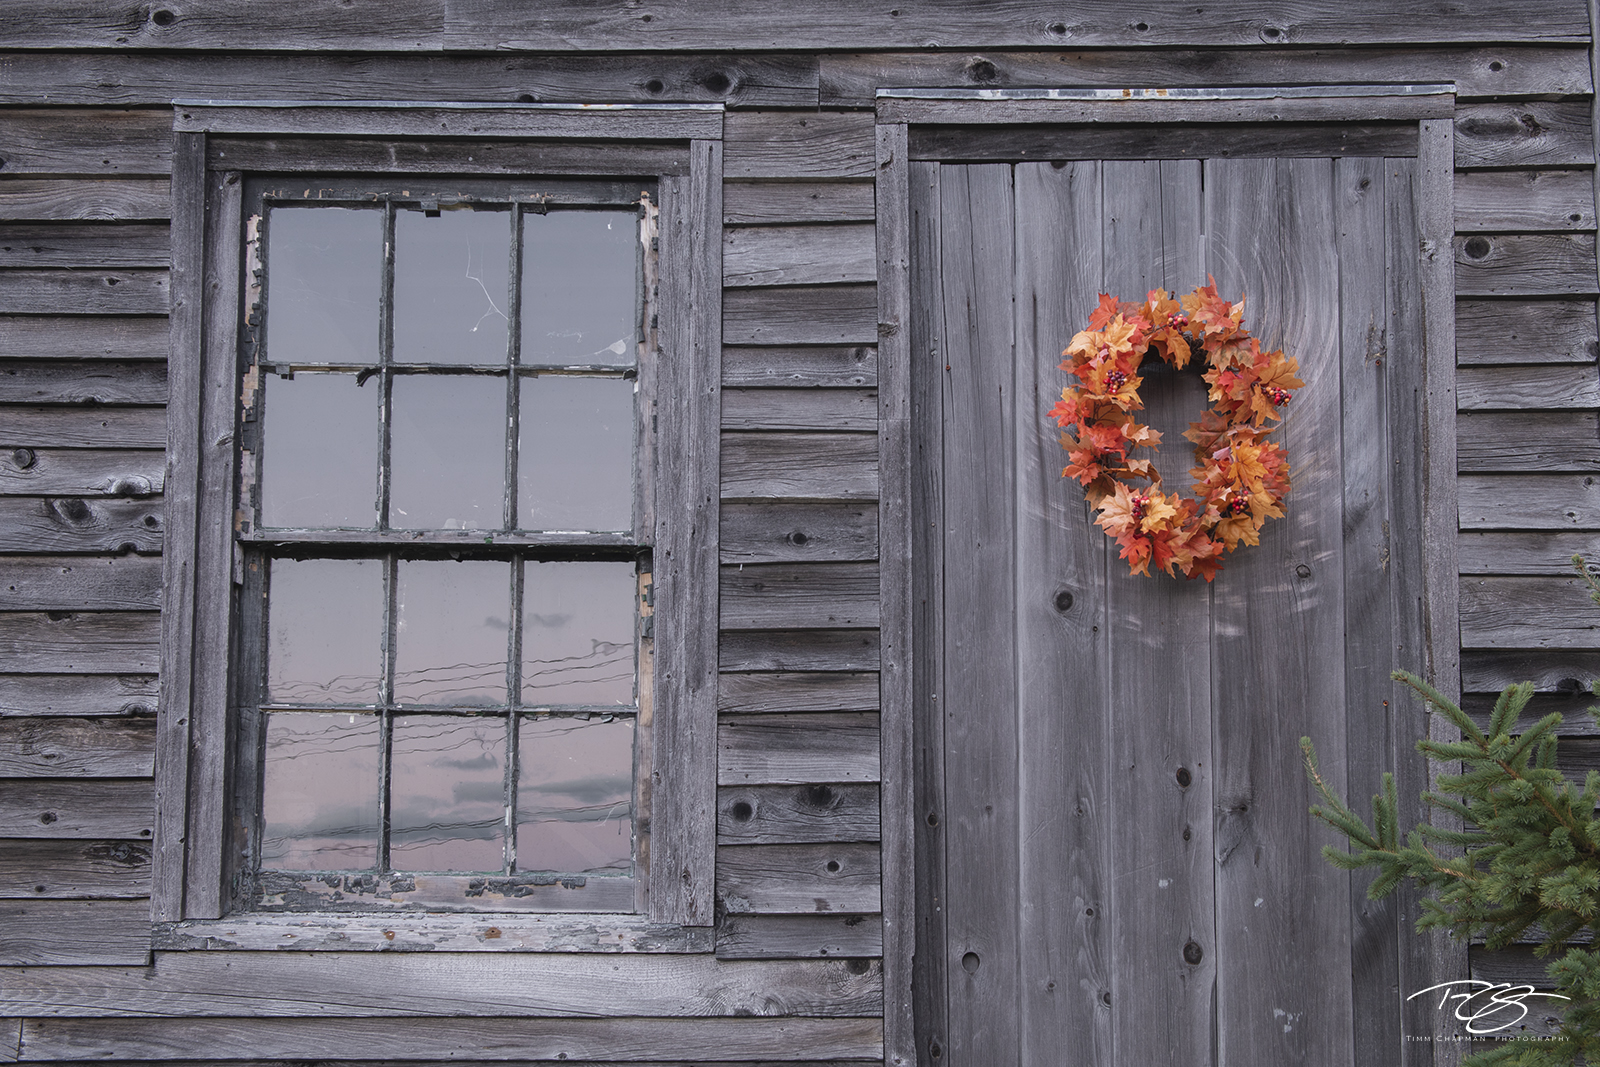 window, door, maine, cabin, wood, rustic, wreath, orange